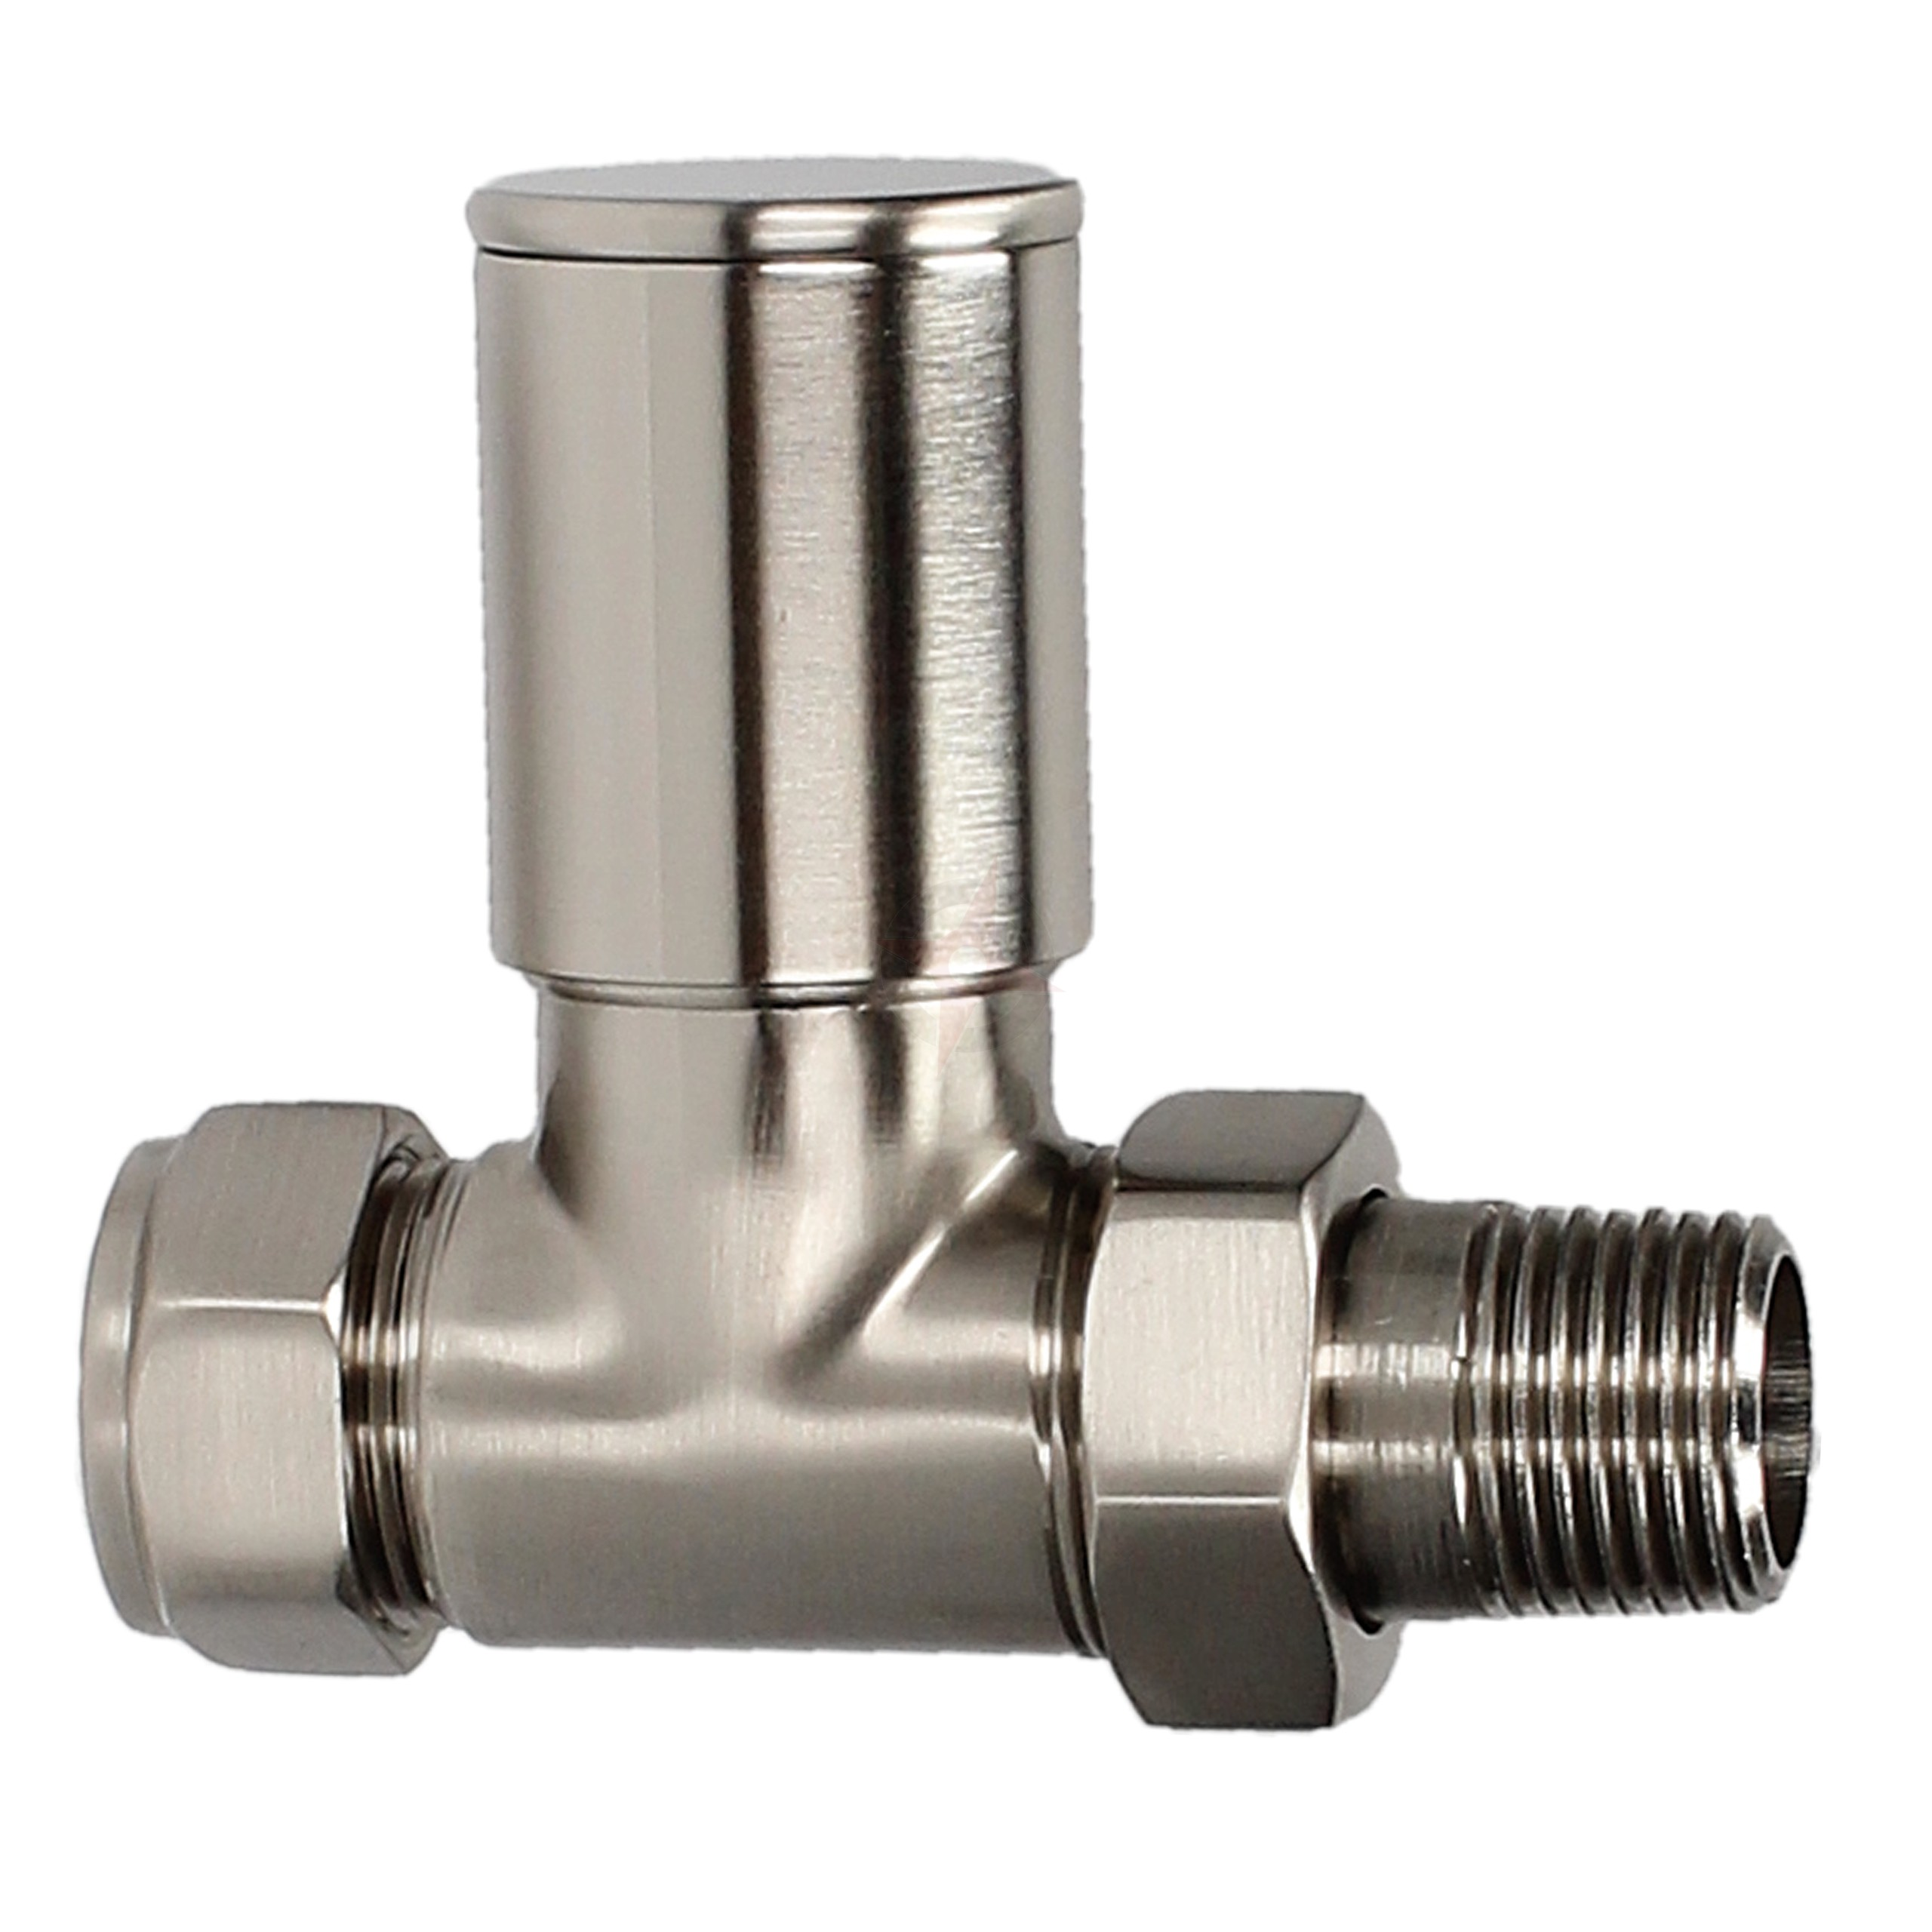 Evolve HP 15mm Silver Nickel Straight Wheel Head Valve